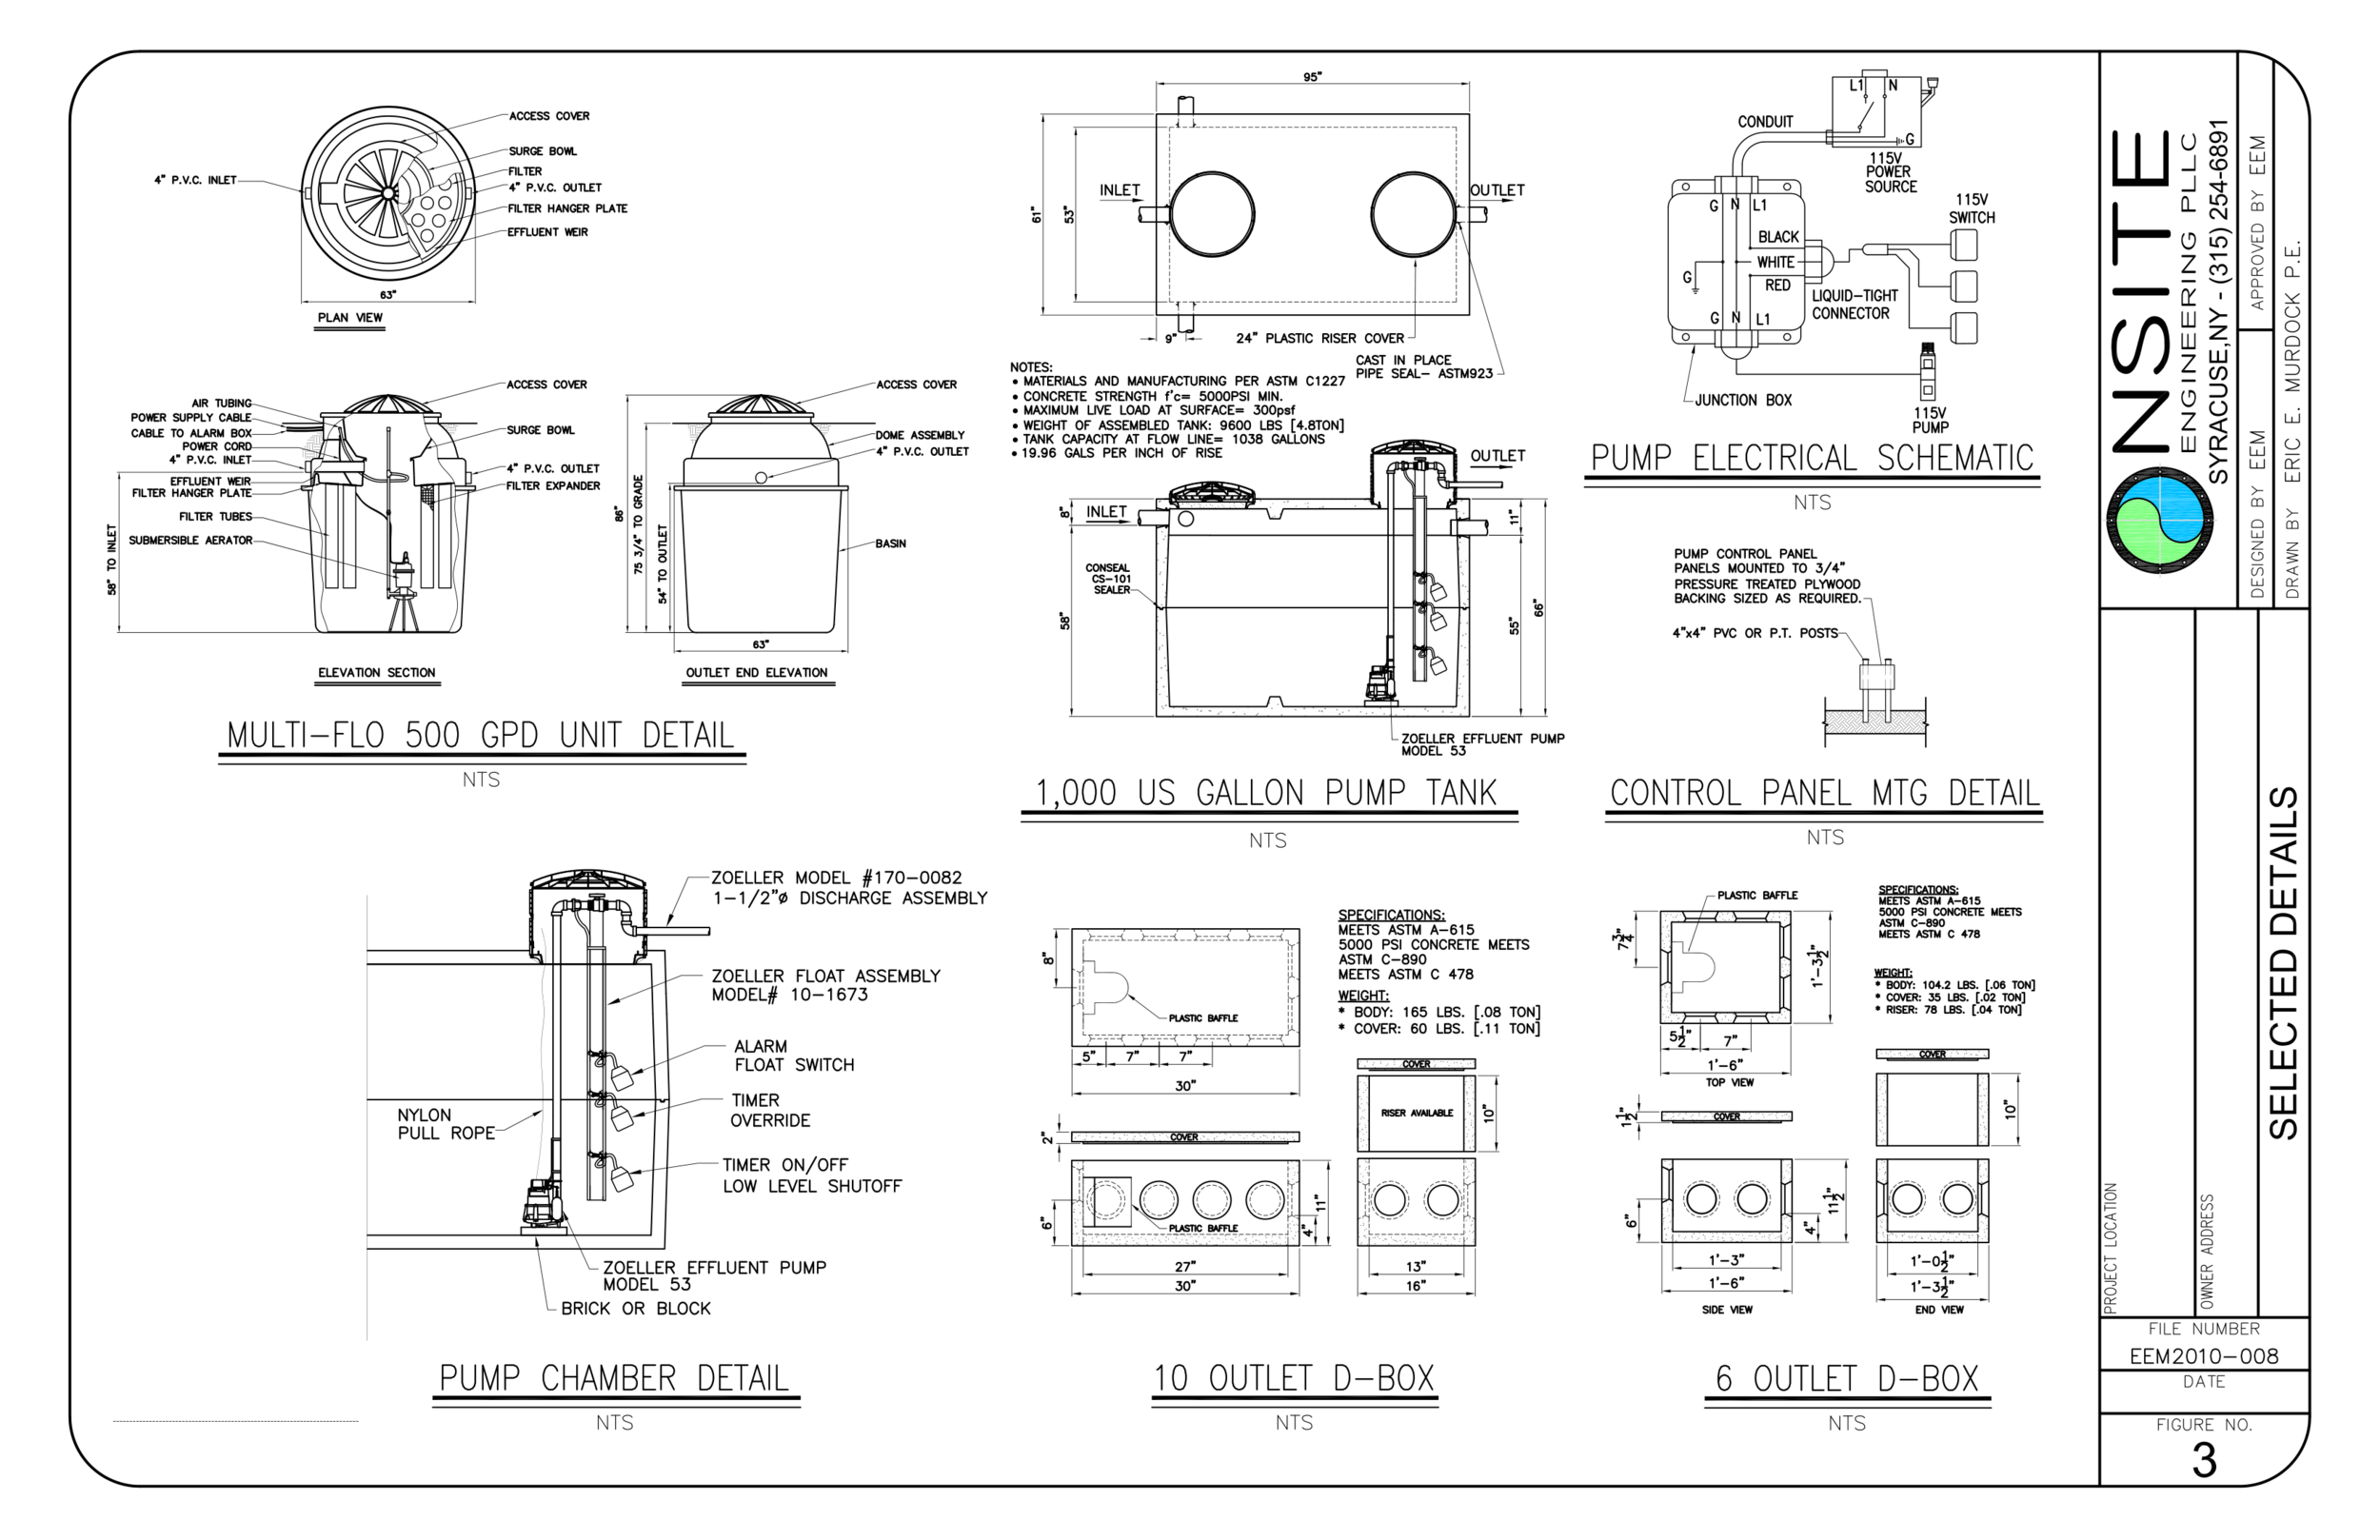 Mallory Dual Point Distributor Diagram Wiring Diagrams For Hyfire Iv Boat Smallest Sbc Tach